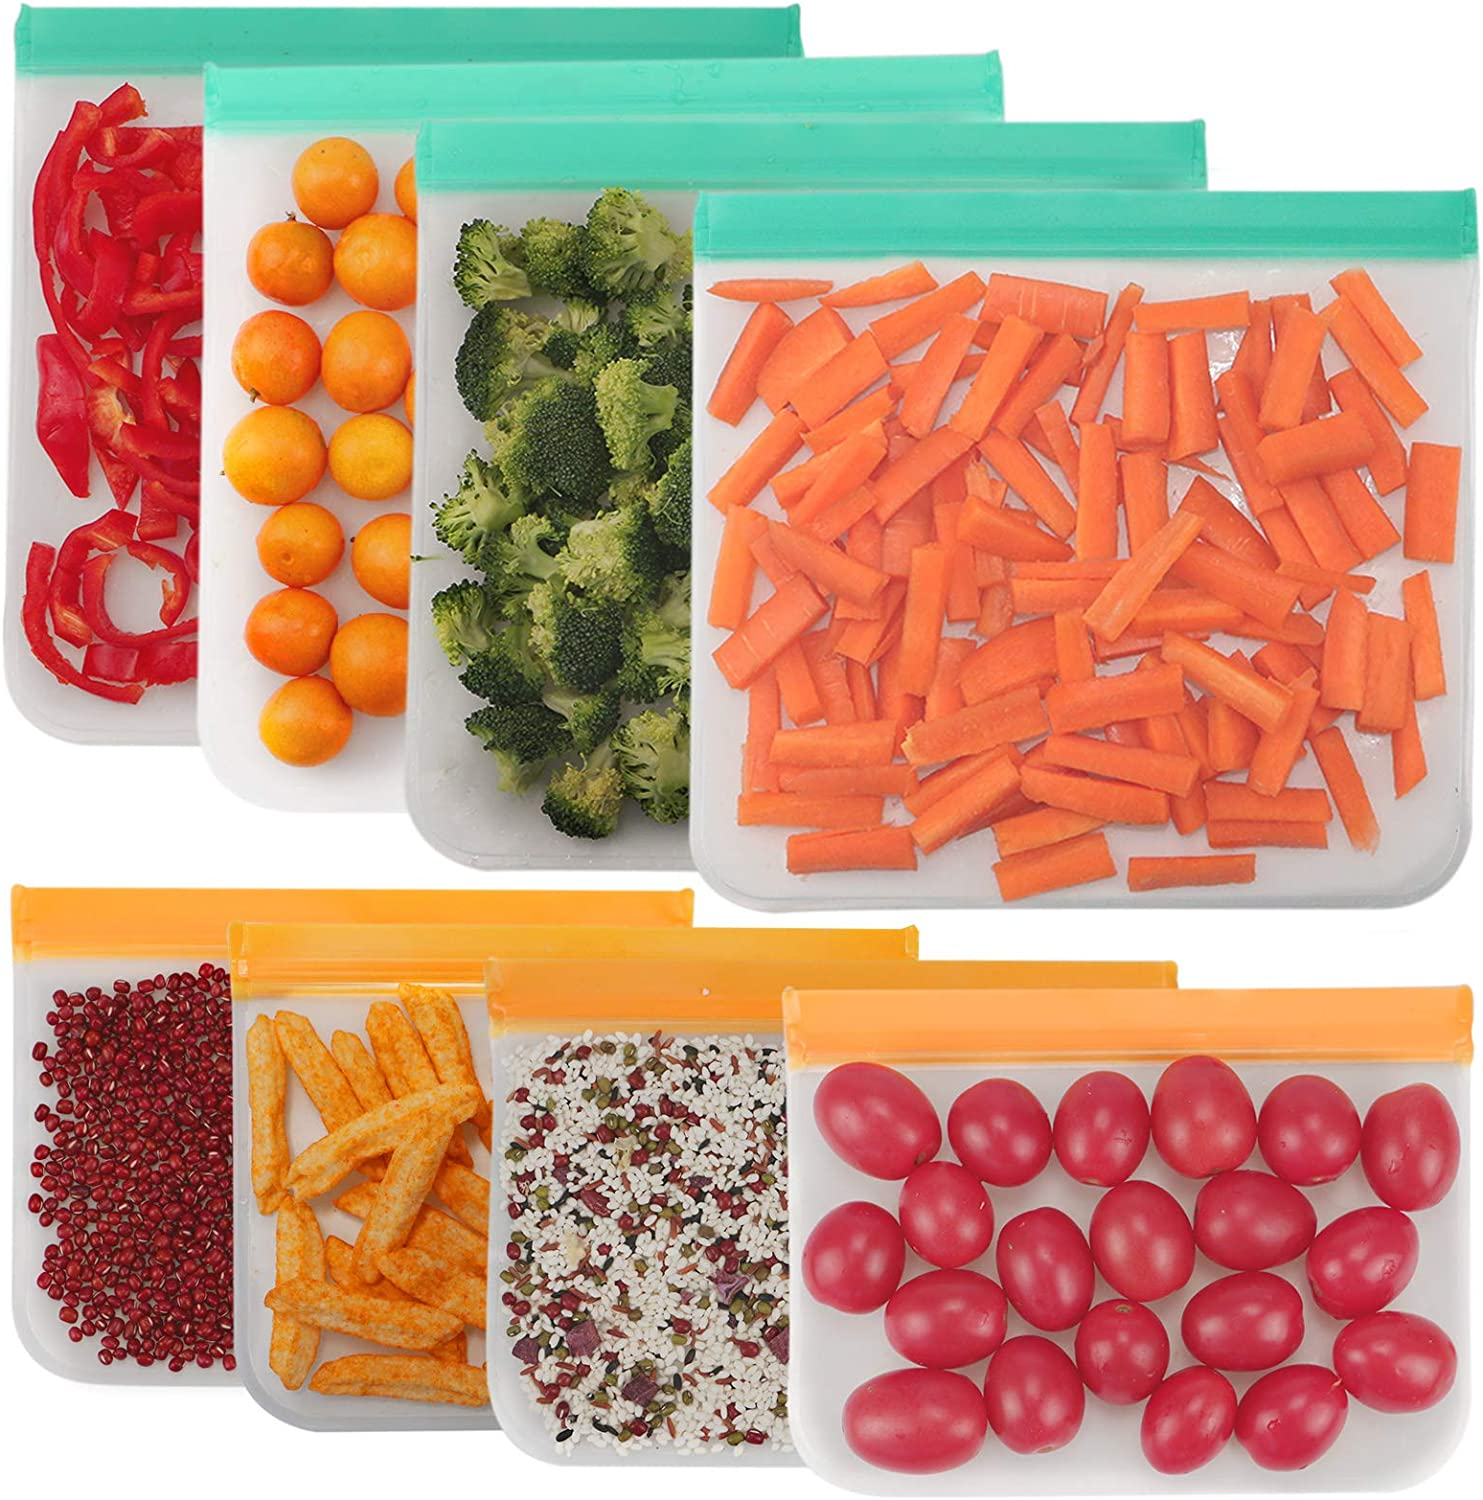 Reusable Food Storage Bags- 8 Pack Reusable Freezer Bags(4 Reusable Gallon Bags + 4 reusable Sandwich Bags), Extra Thick Leakproof Ziplock Bags for Meat, Fruit and Veggies, BPA FREE